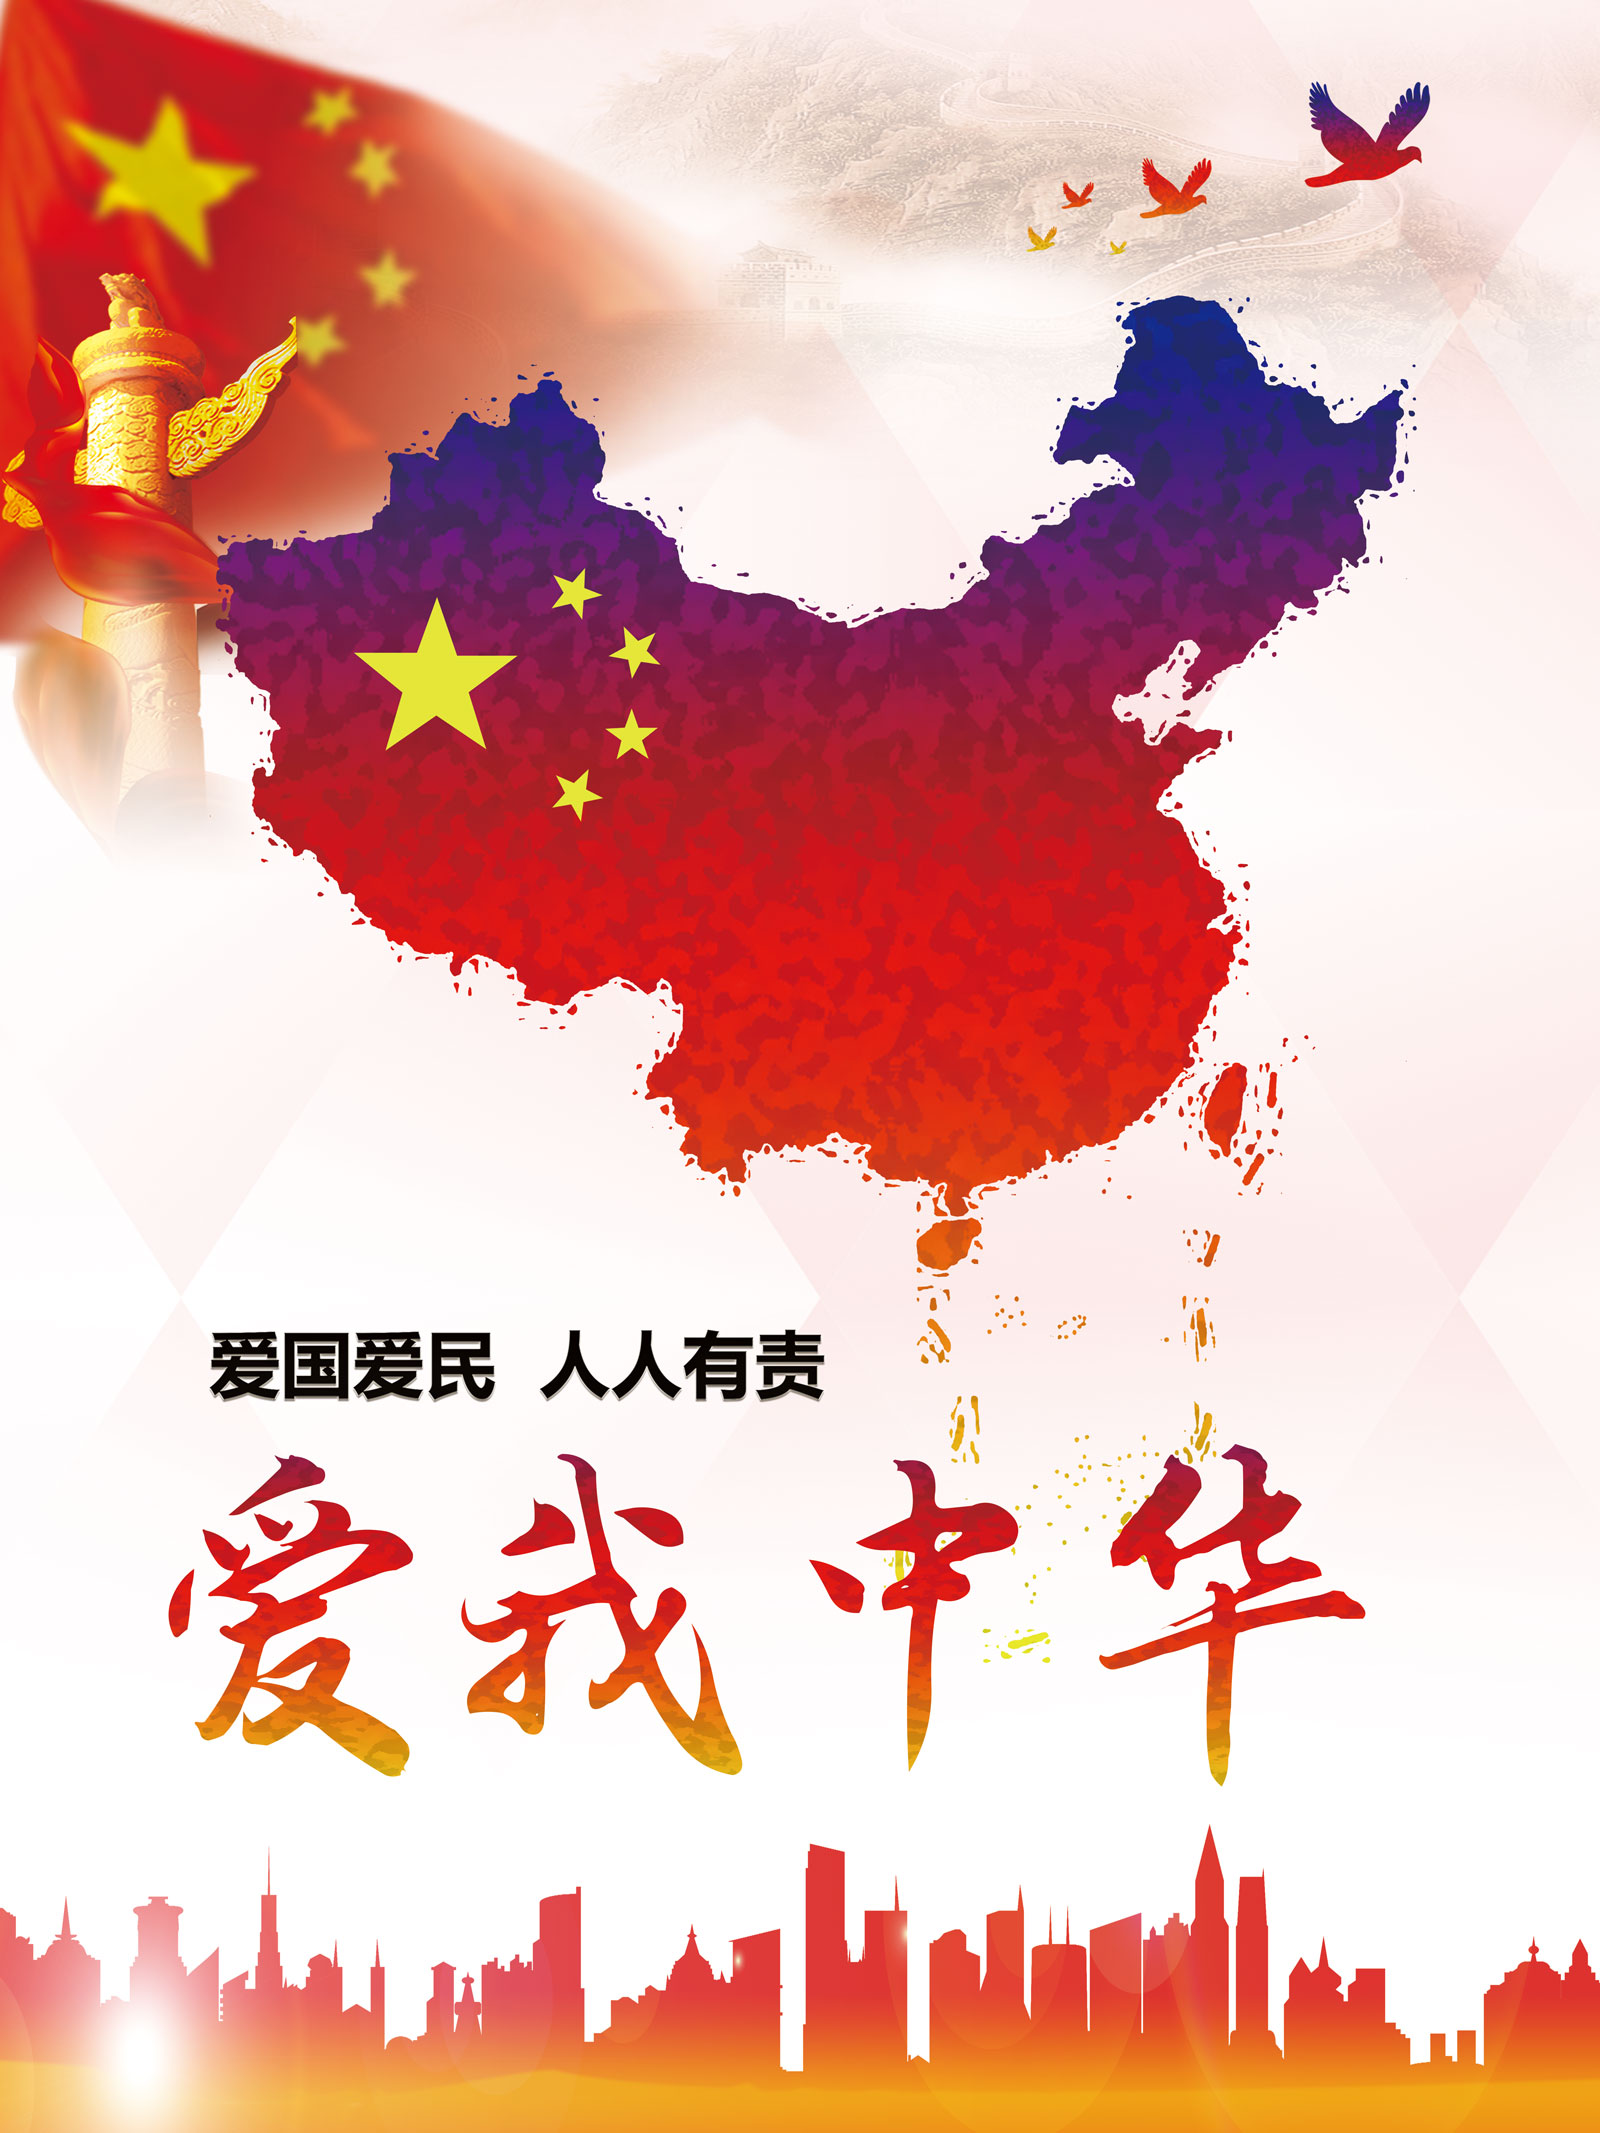 Patriotic education - China PSD File Free Download Government posters